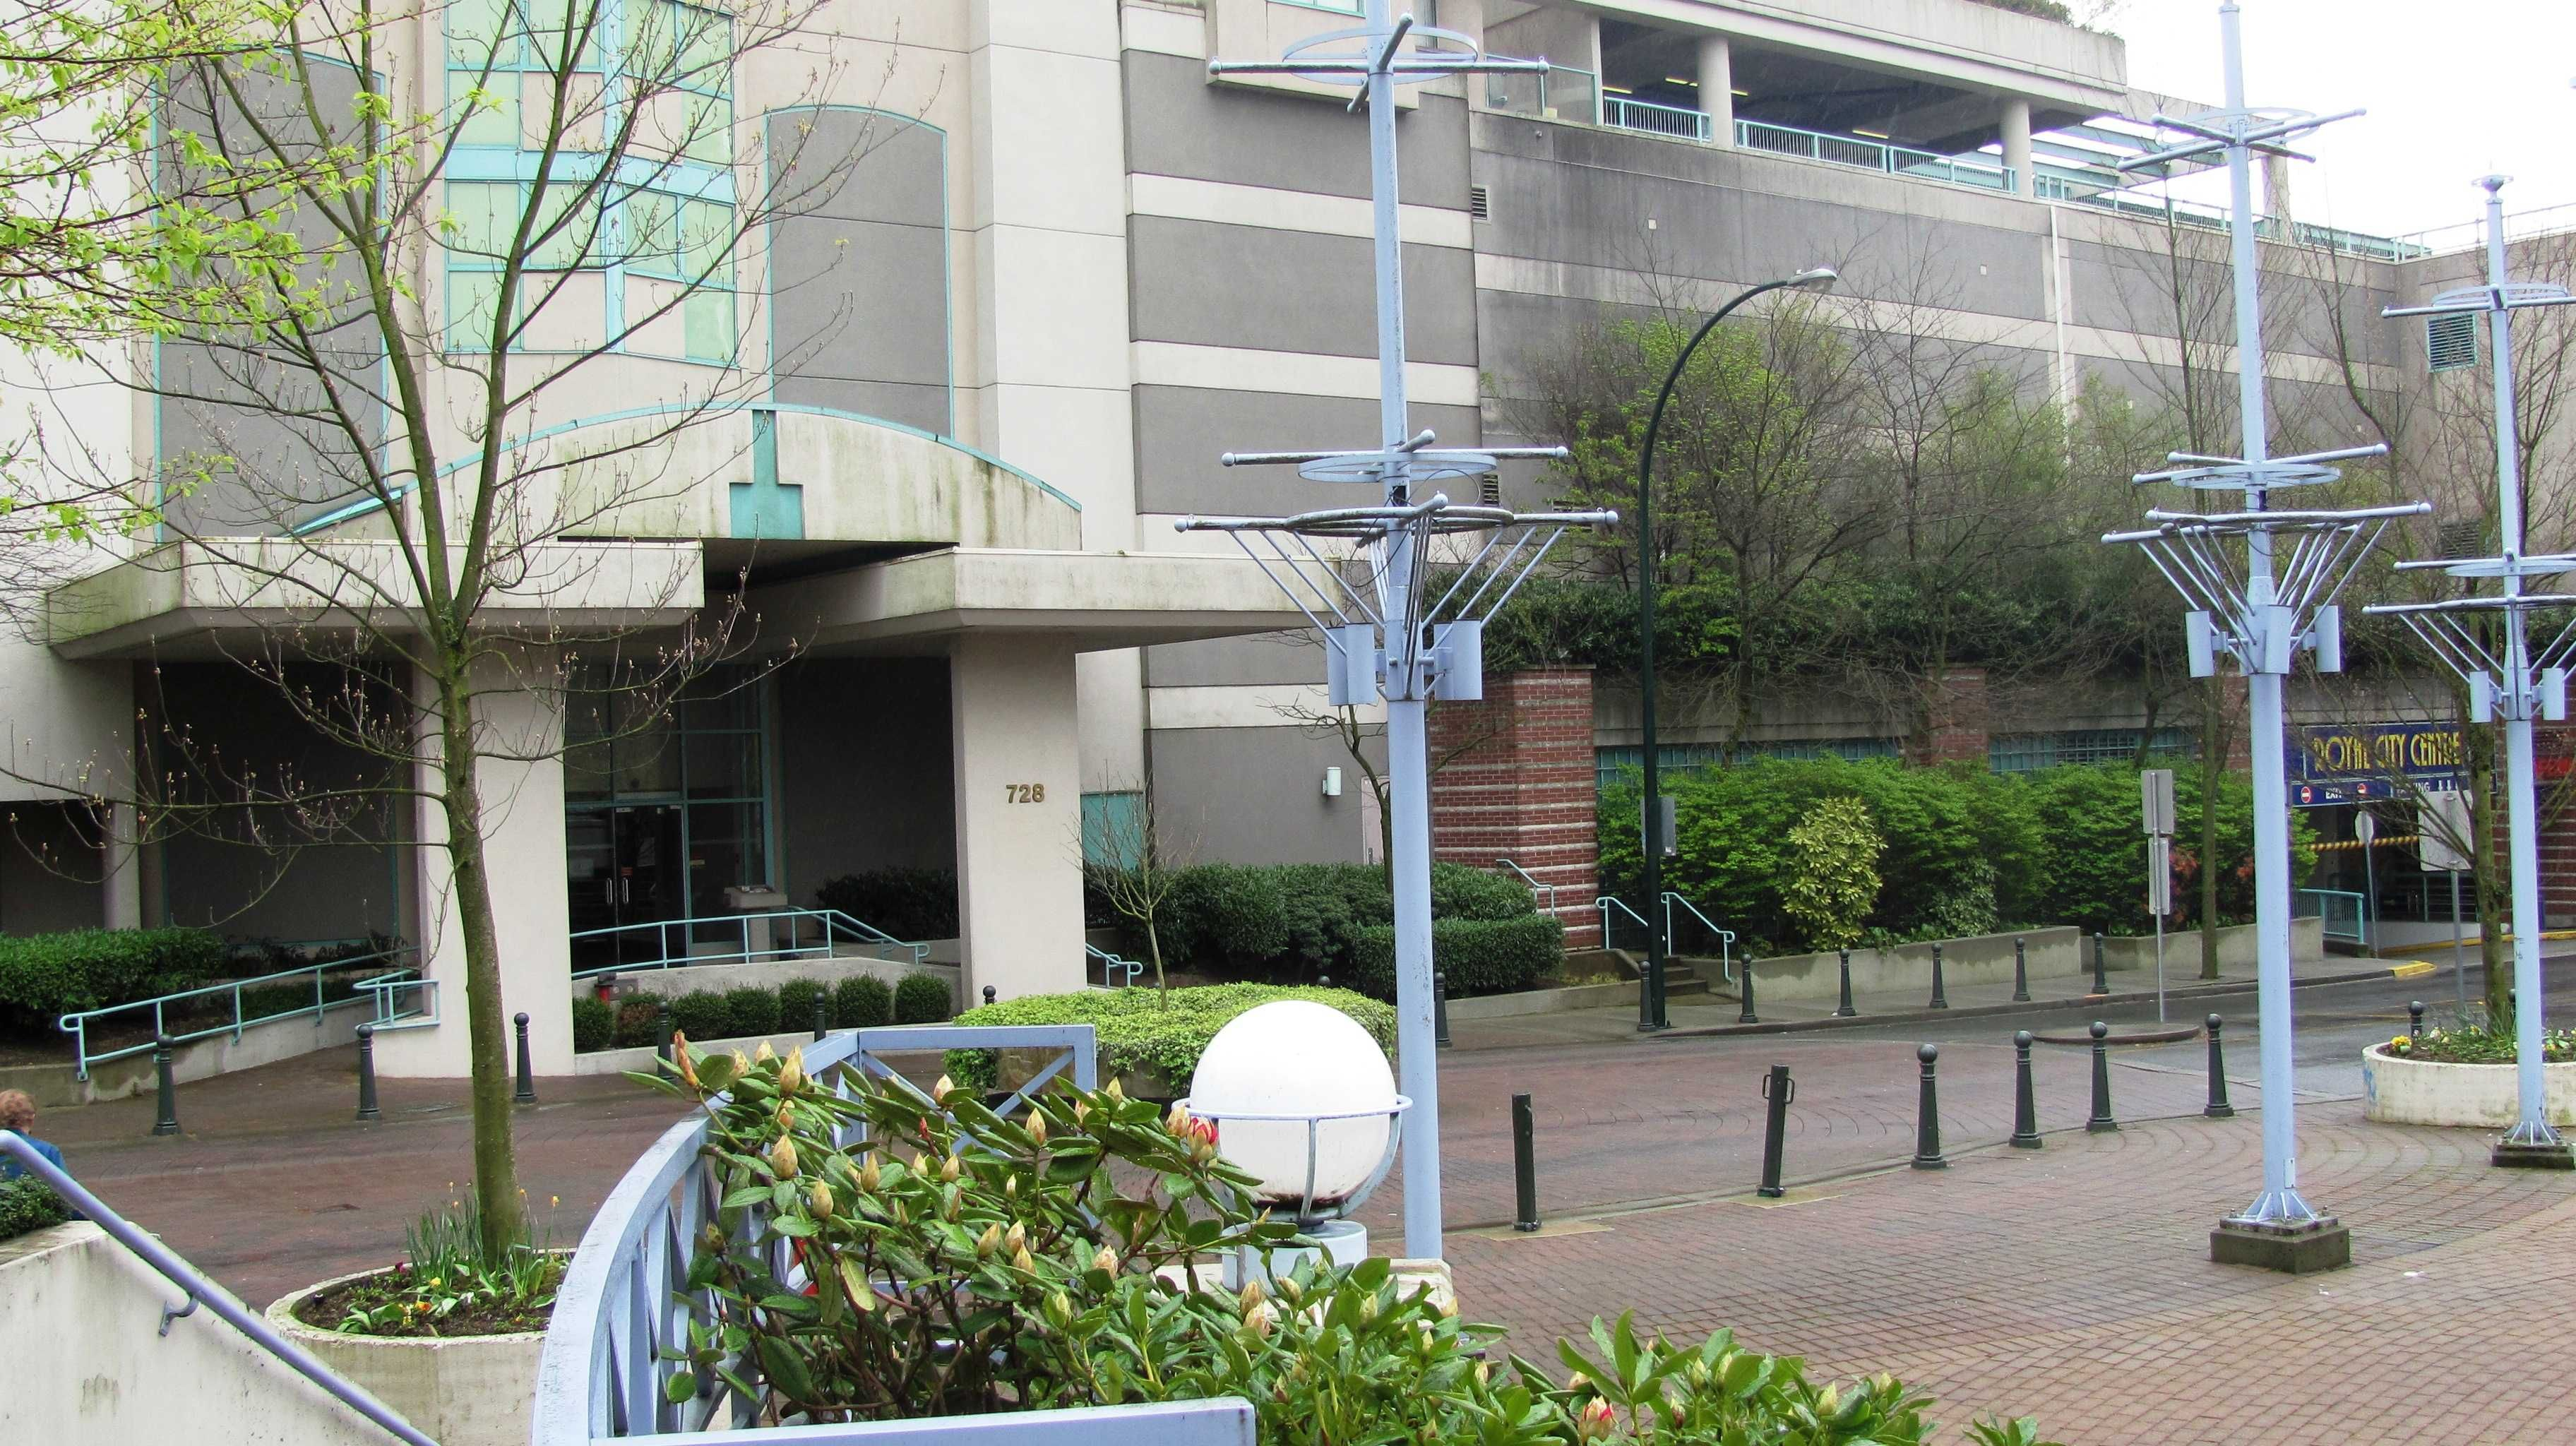 """Main Photo: 904 728 PRINCESS Street in New Westminster: Uptown NW Condo for sale in """"PRINCESS TOWER"""" : MLS®# V823200"""